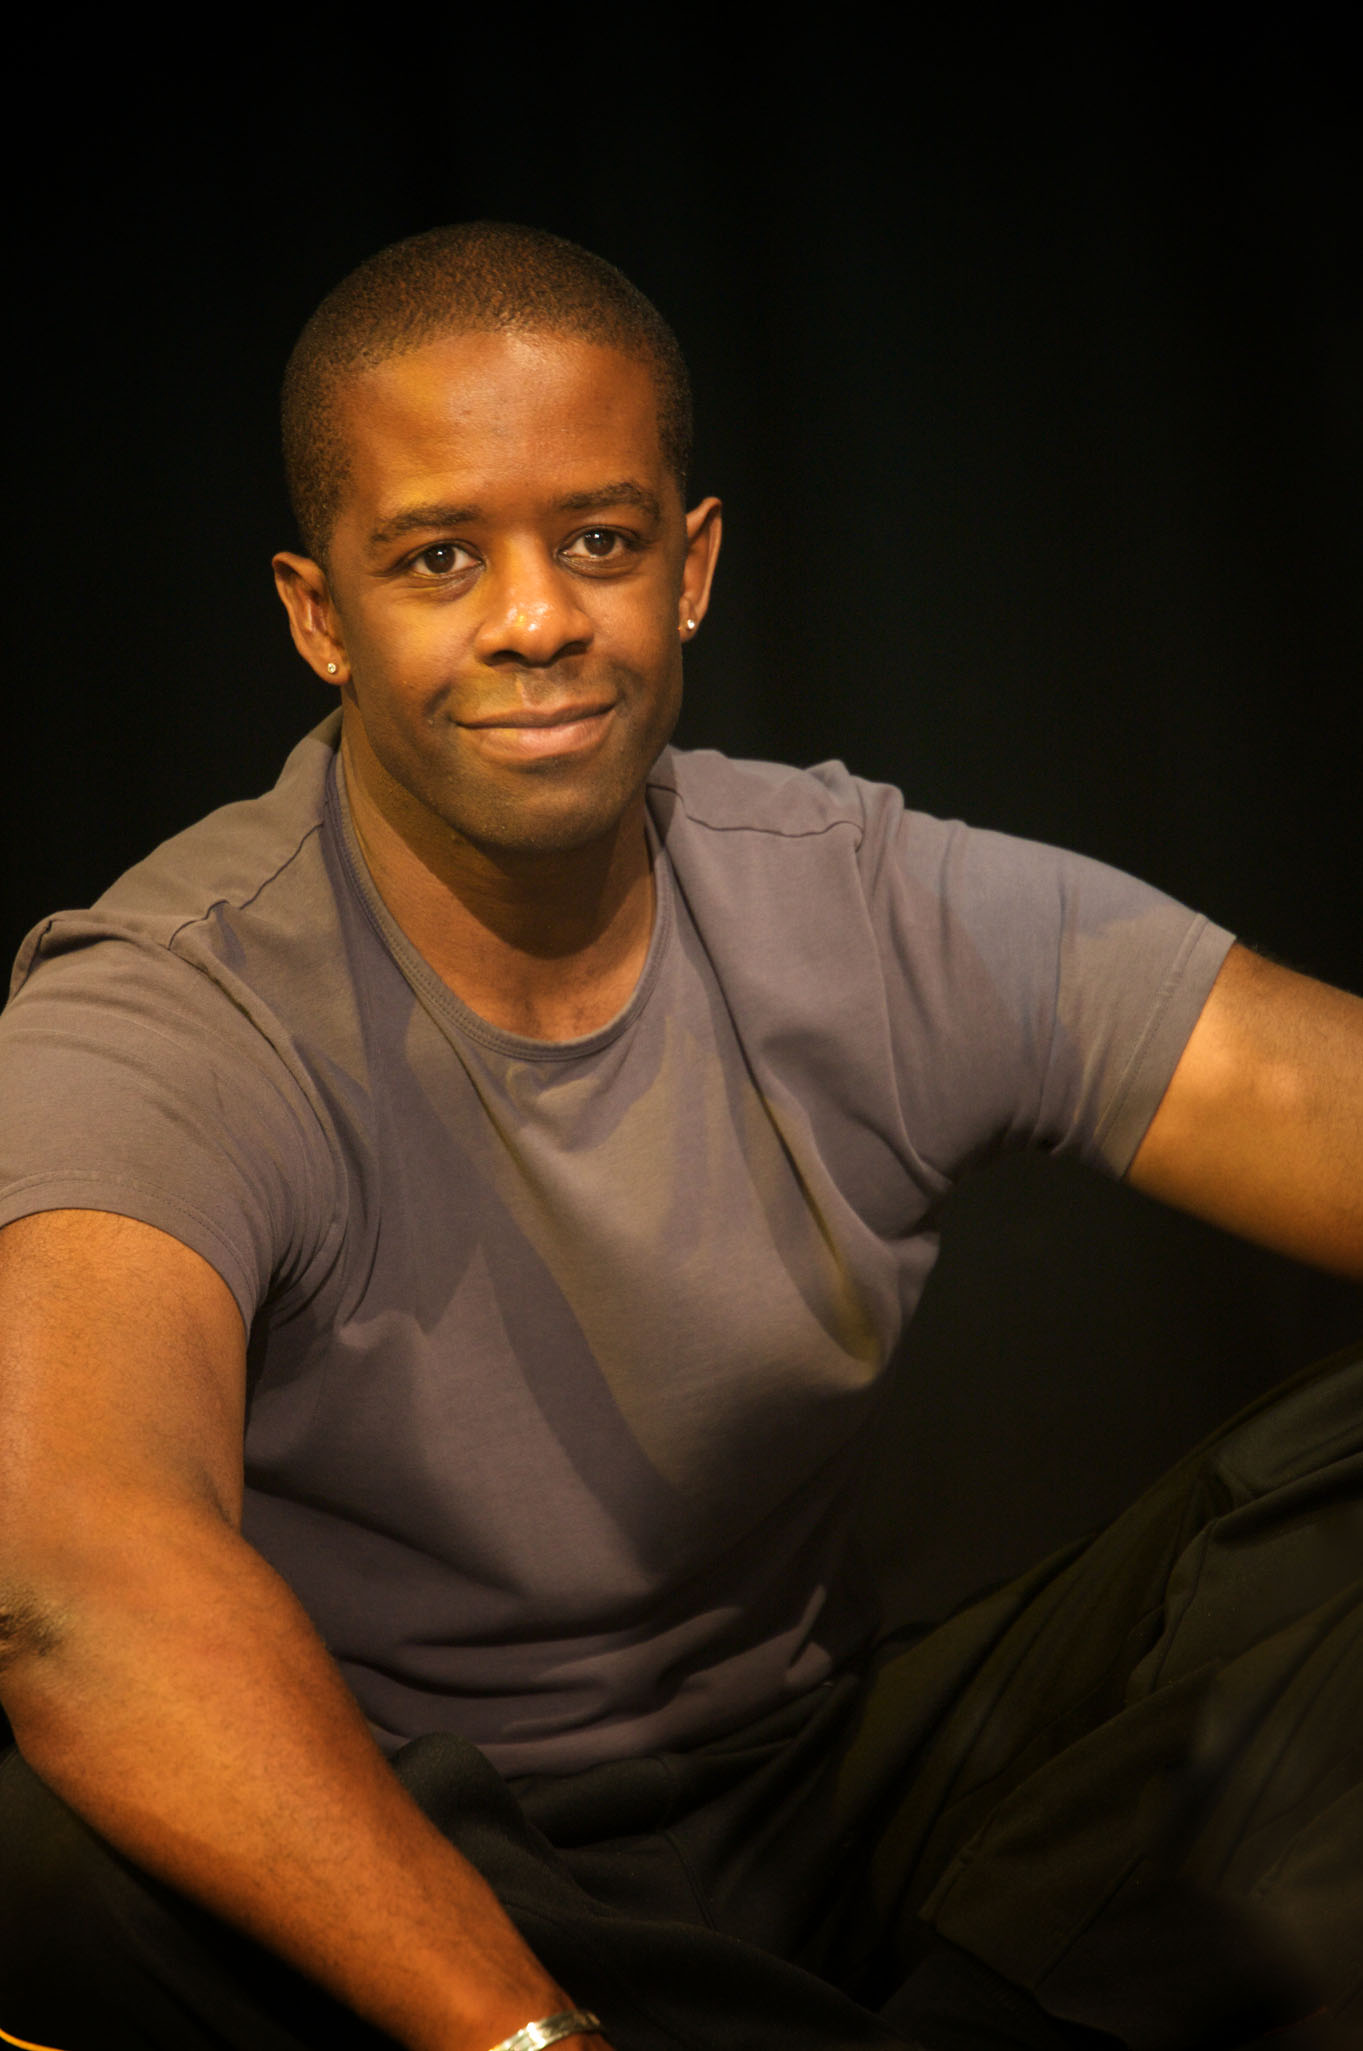 adrian lester theatreadrian lester hamlet youtube, adrian lester to be or not to be, adrian lester hamlet, adrian lester, adrian lester imdb, adrian lester in othello, адриан лестер, adrian lester hustle, adrian lester wife, adrian lester actor, adrian lester undercover, adrian lester net worth, adrian lester red velvet, adrian lester movies and tv shows, adrian lester james bond, adrian lester twitter, adrian lester and his wife, adrian lester theatre, adrian lester family, adrian lester agent